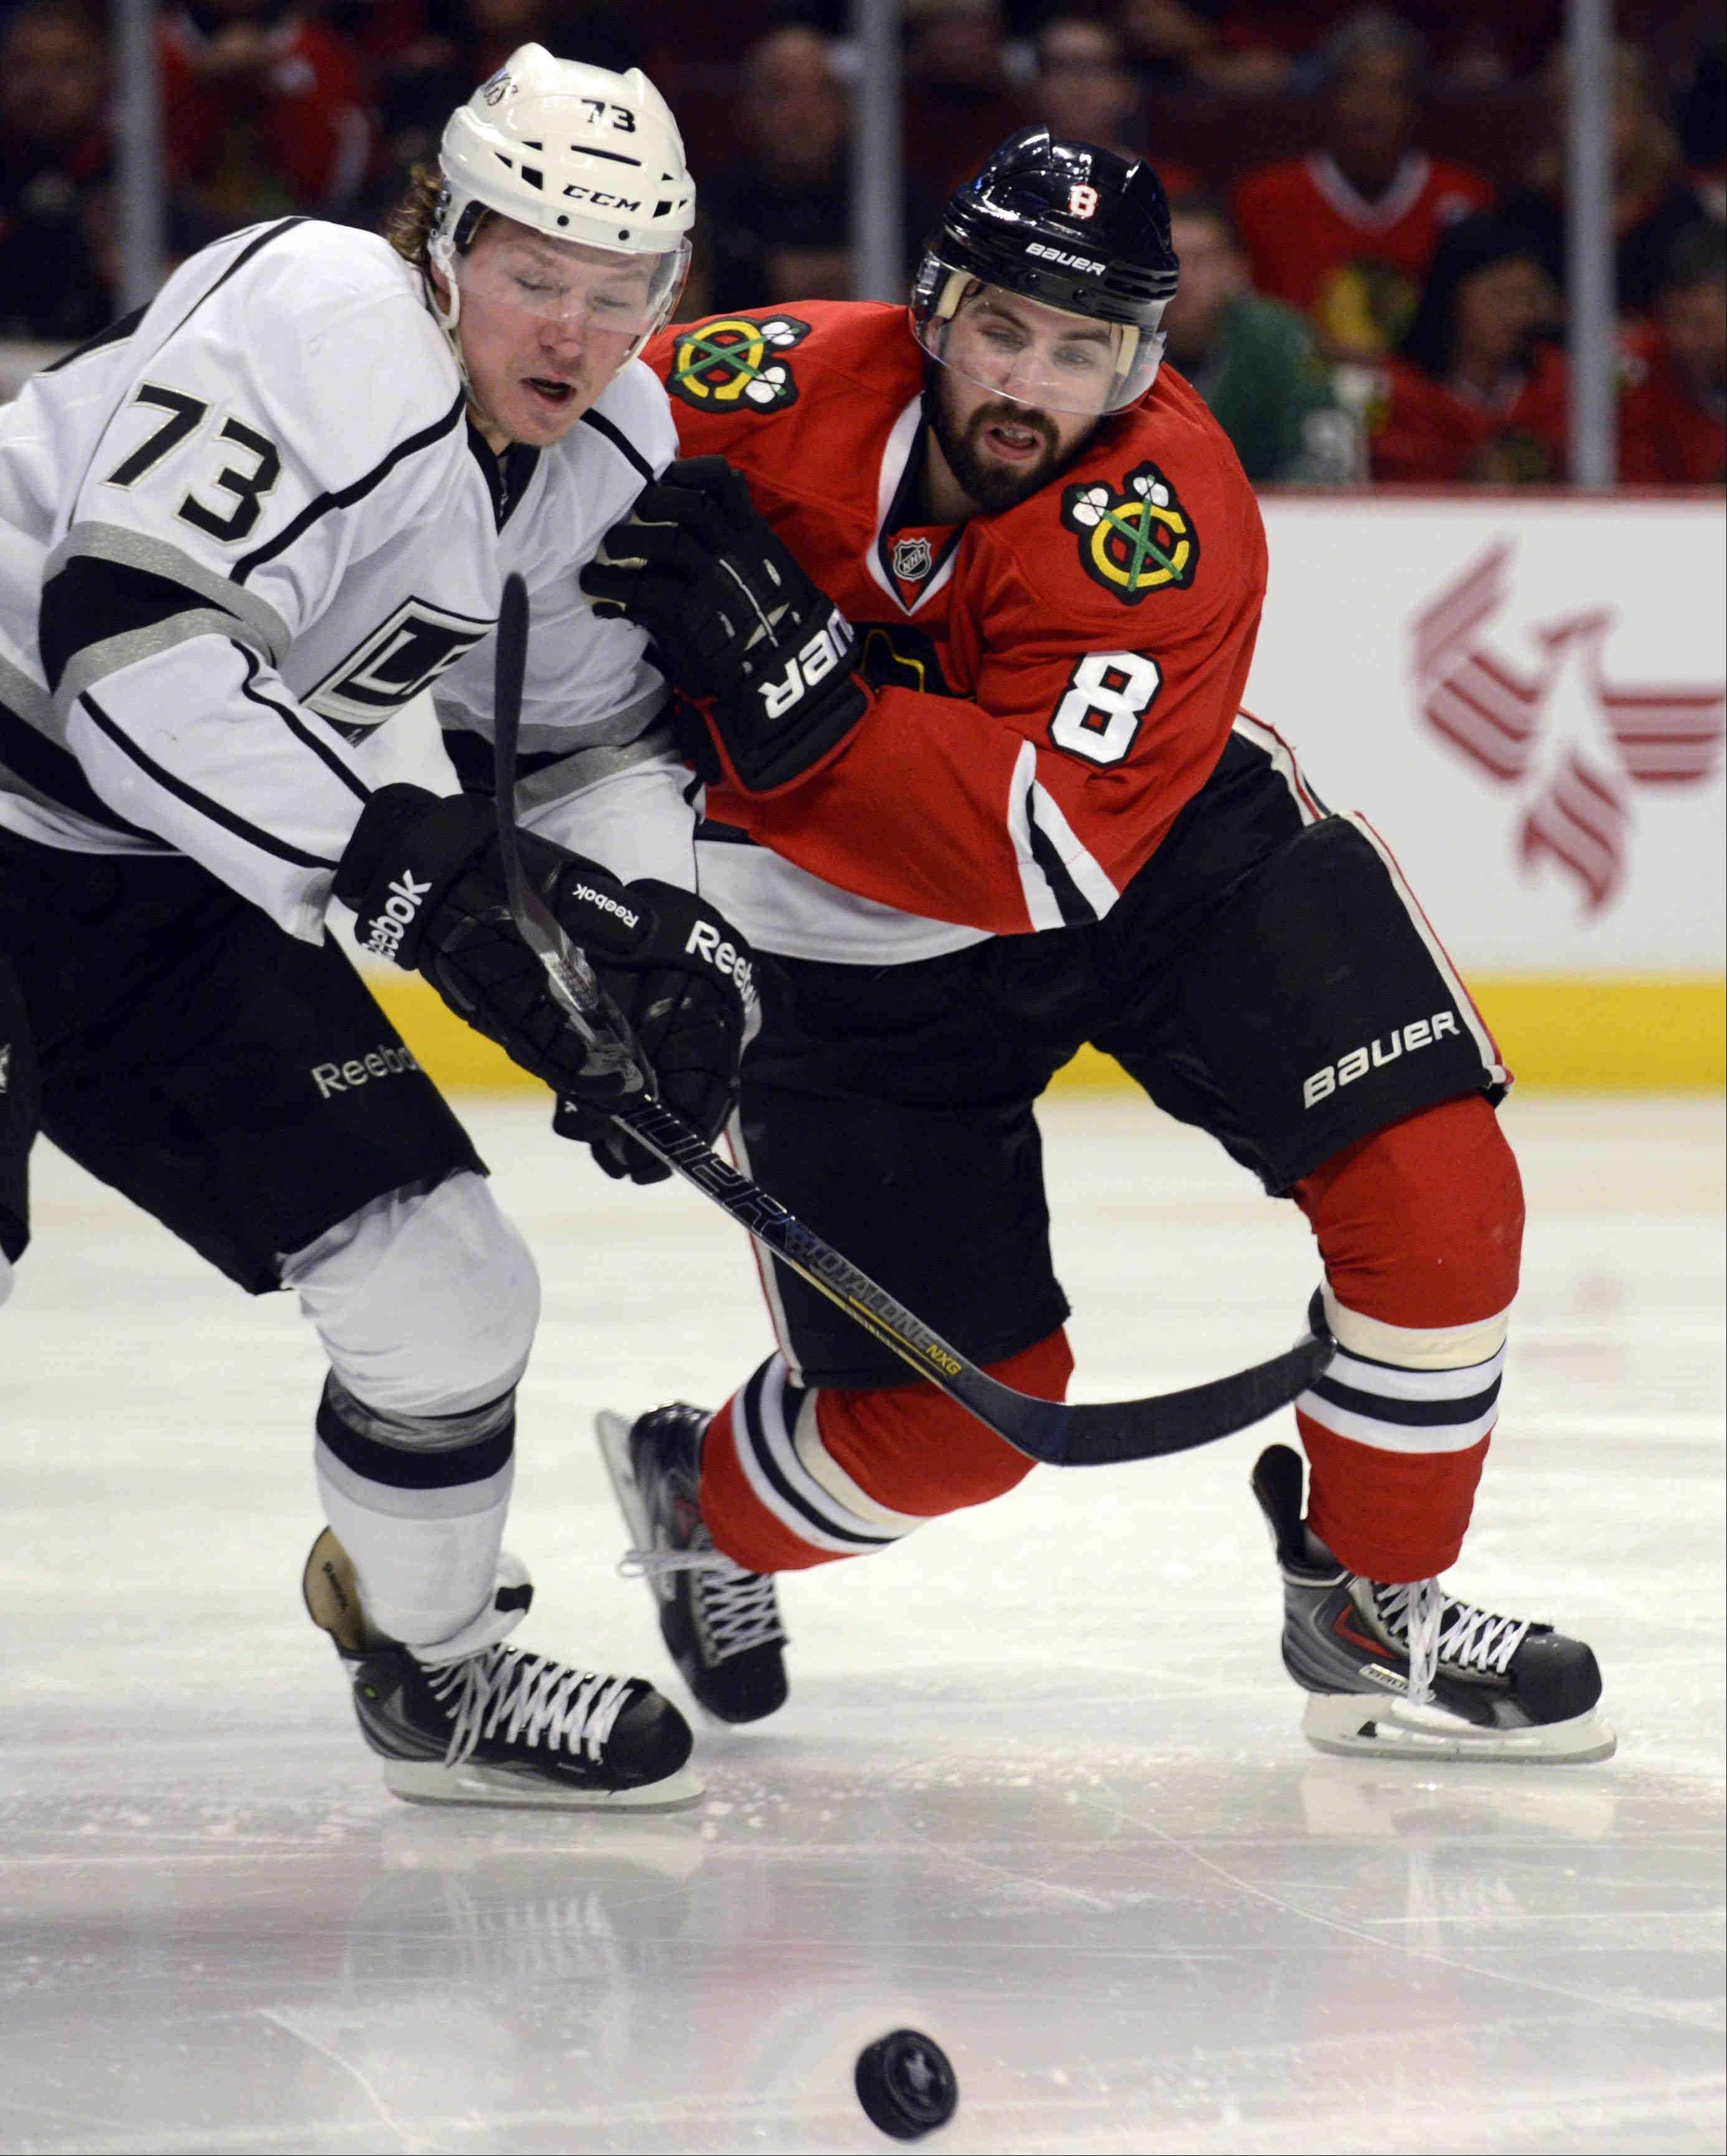 Blackhawks defenseman Nick Leddy battles with Los Angeles Kings center Tyler Toffoli during game 2 of the NHL Western Conference finals at the United Center Sunday night in Chicago.